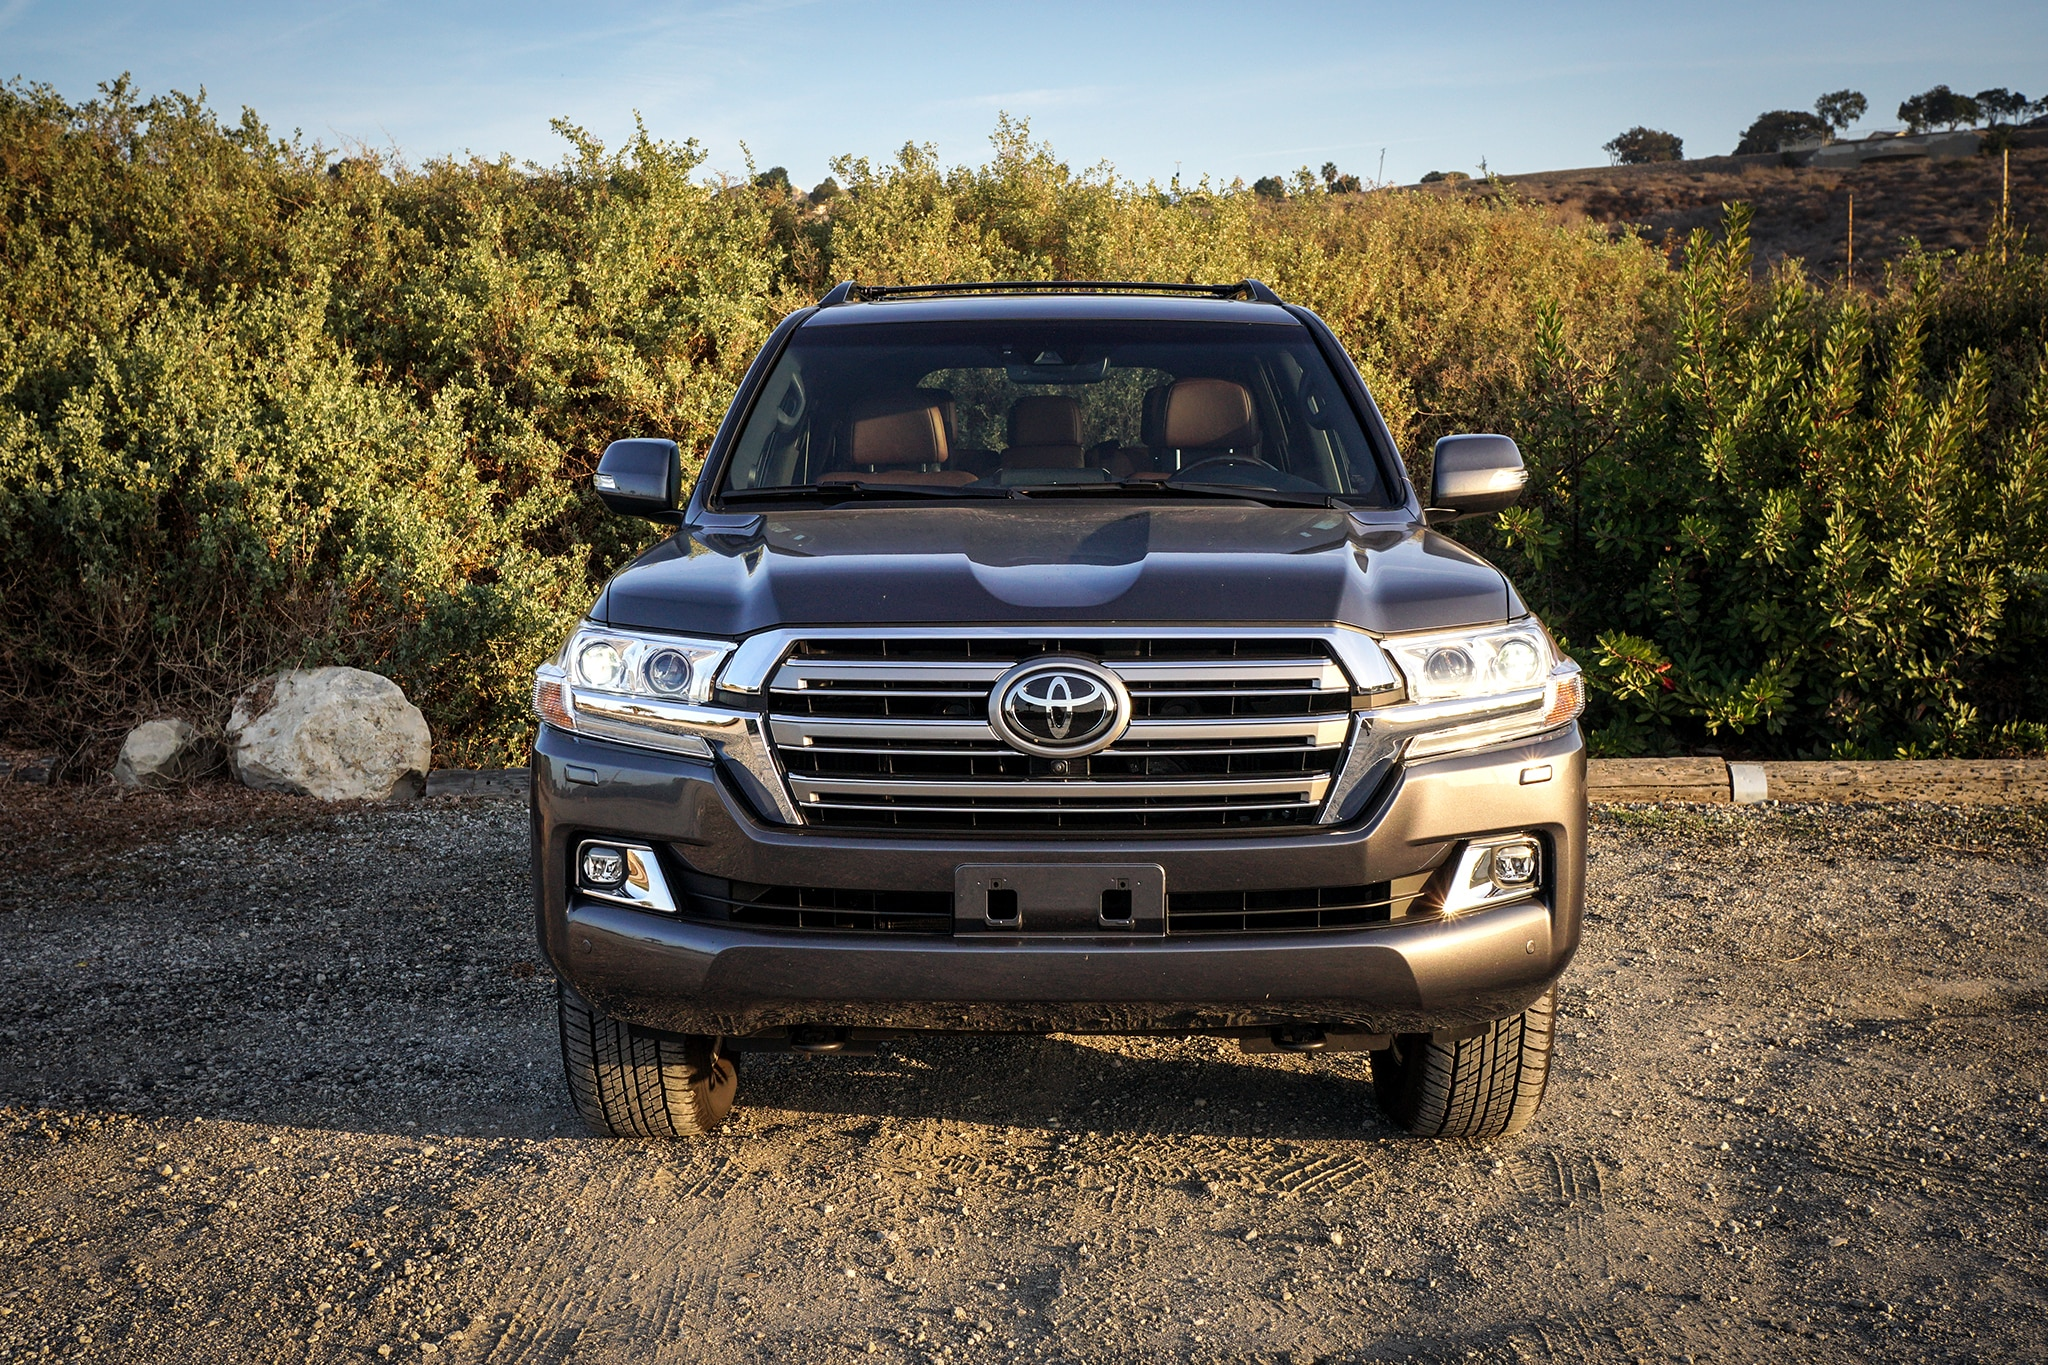 2018 Toyota Land Cruiser One Week Review | Automobile Magazine